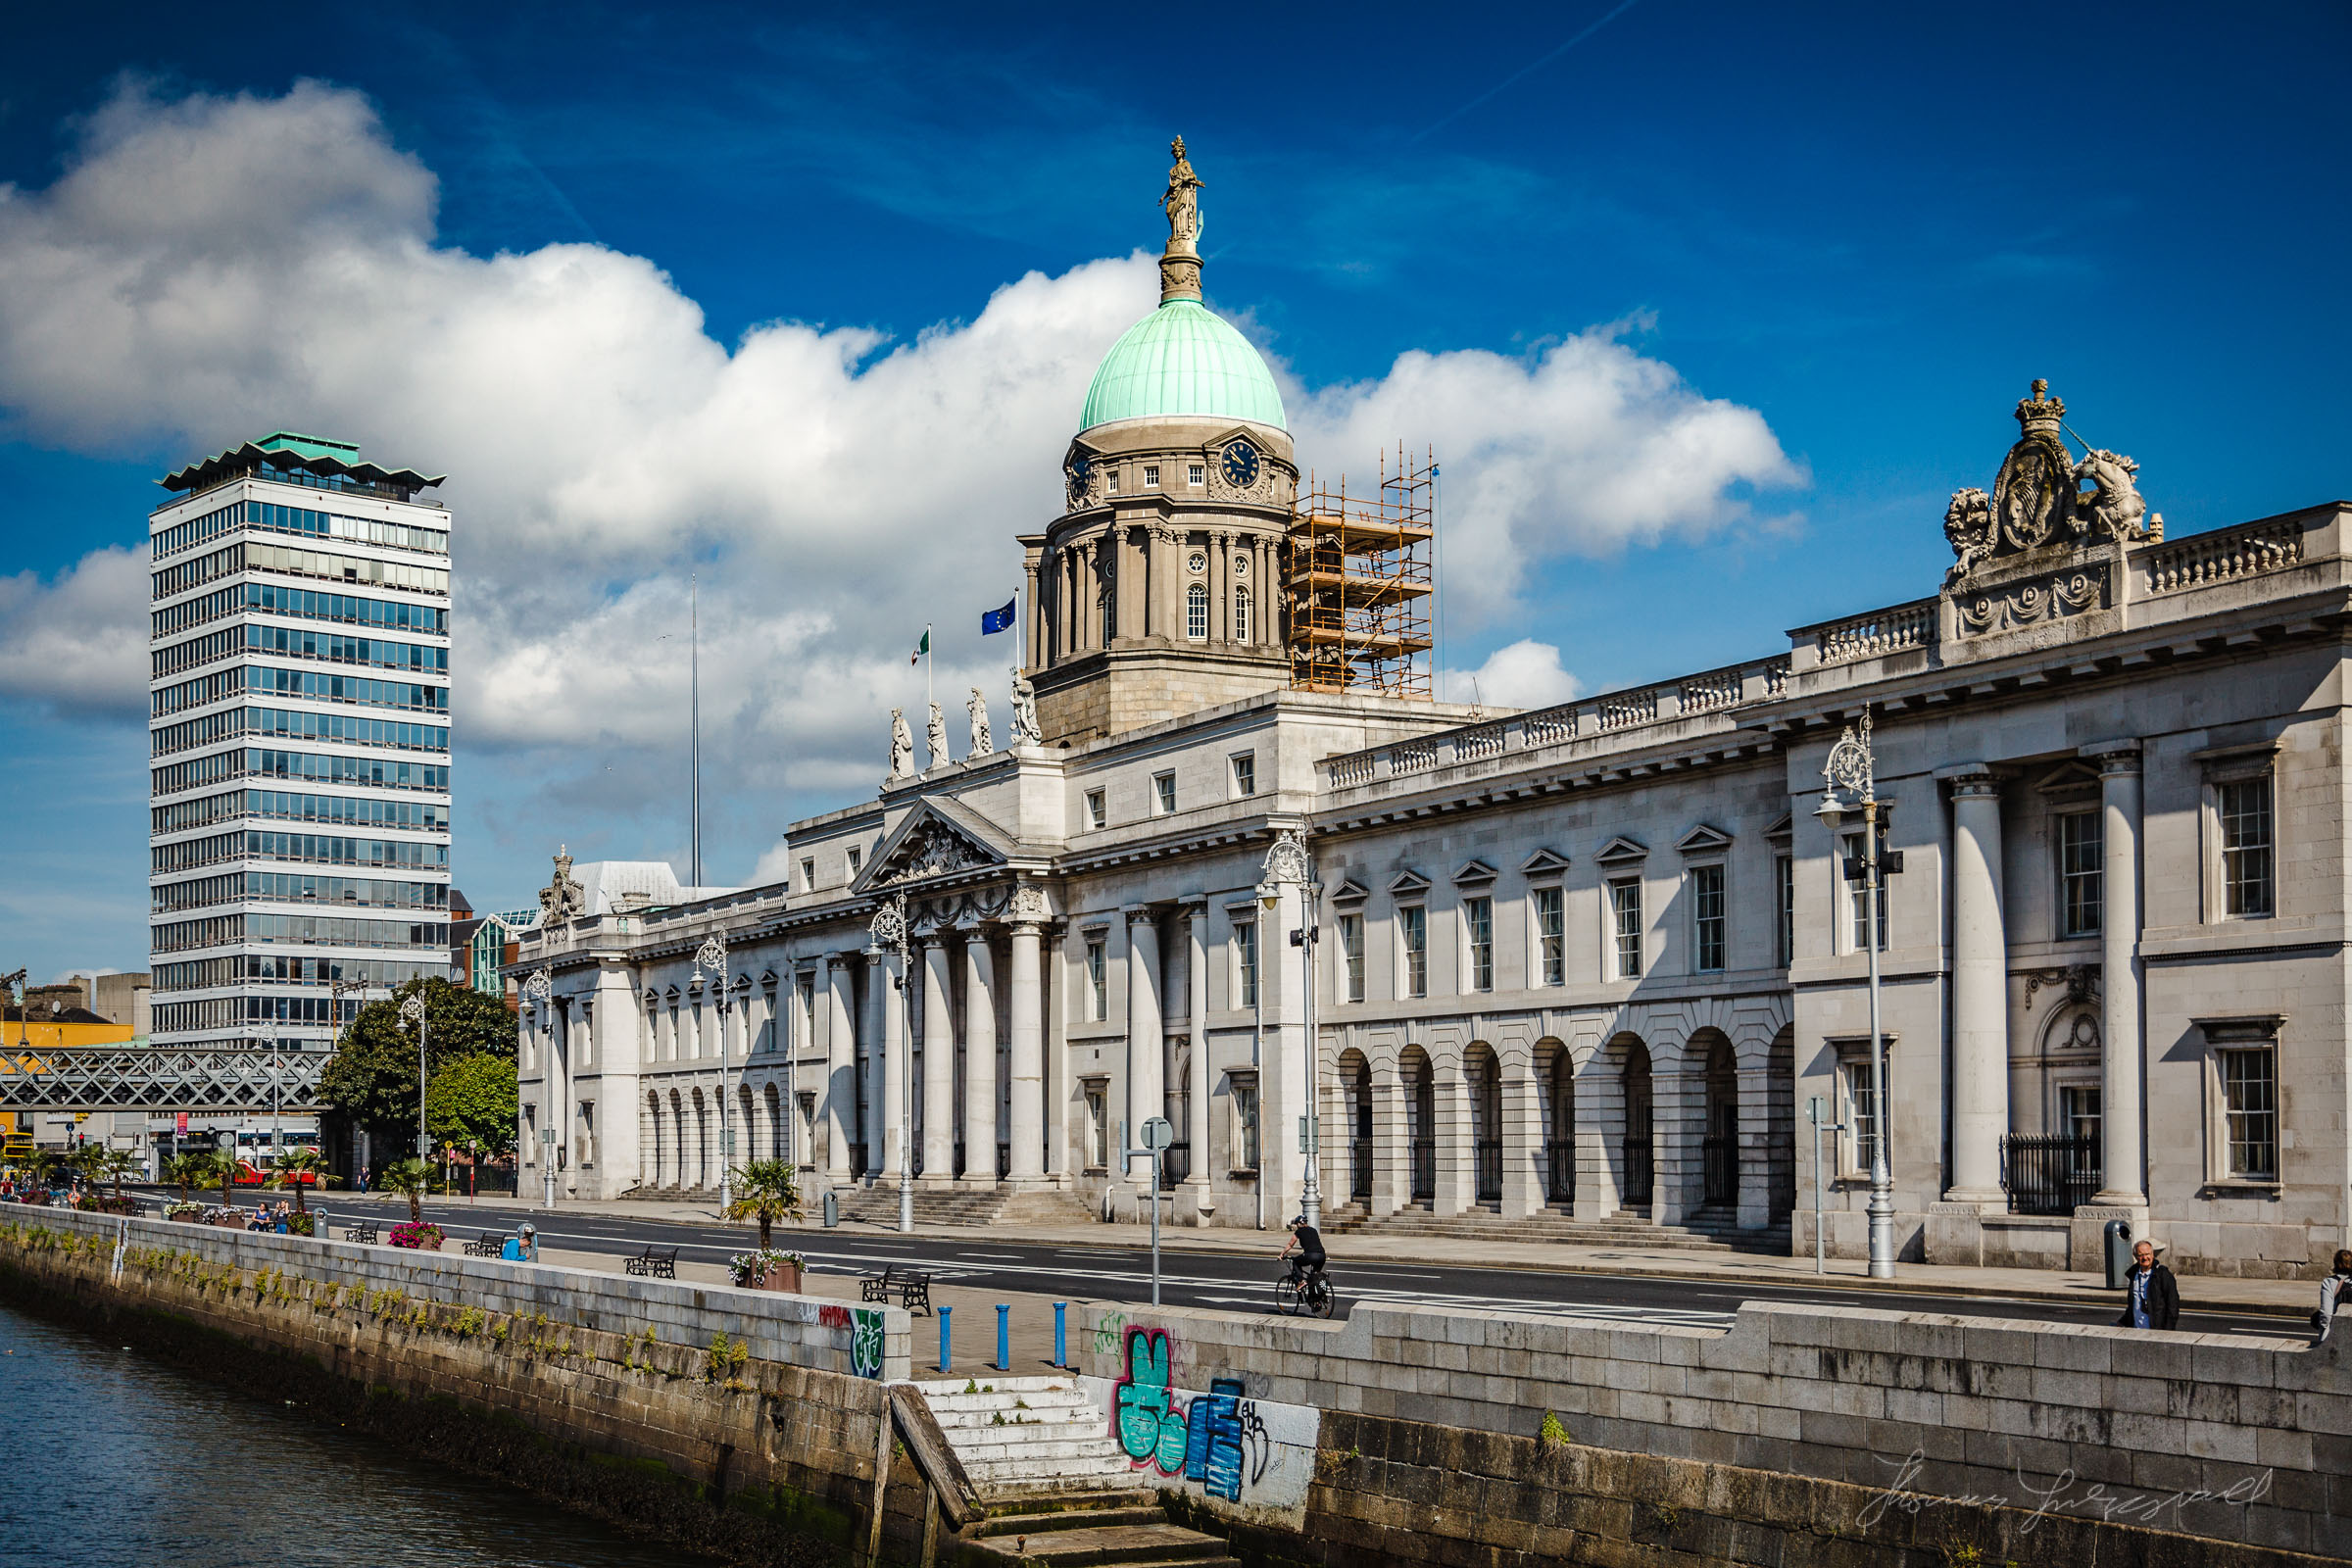 The Custom House in the Early Morning Walk by the Liffey